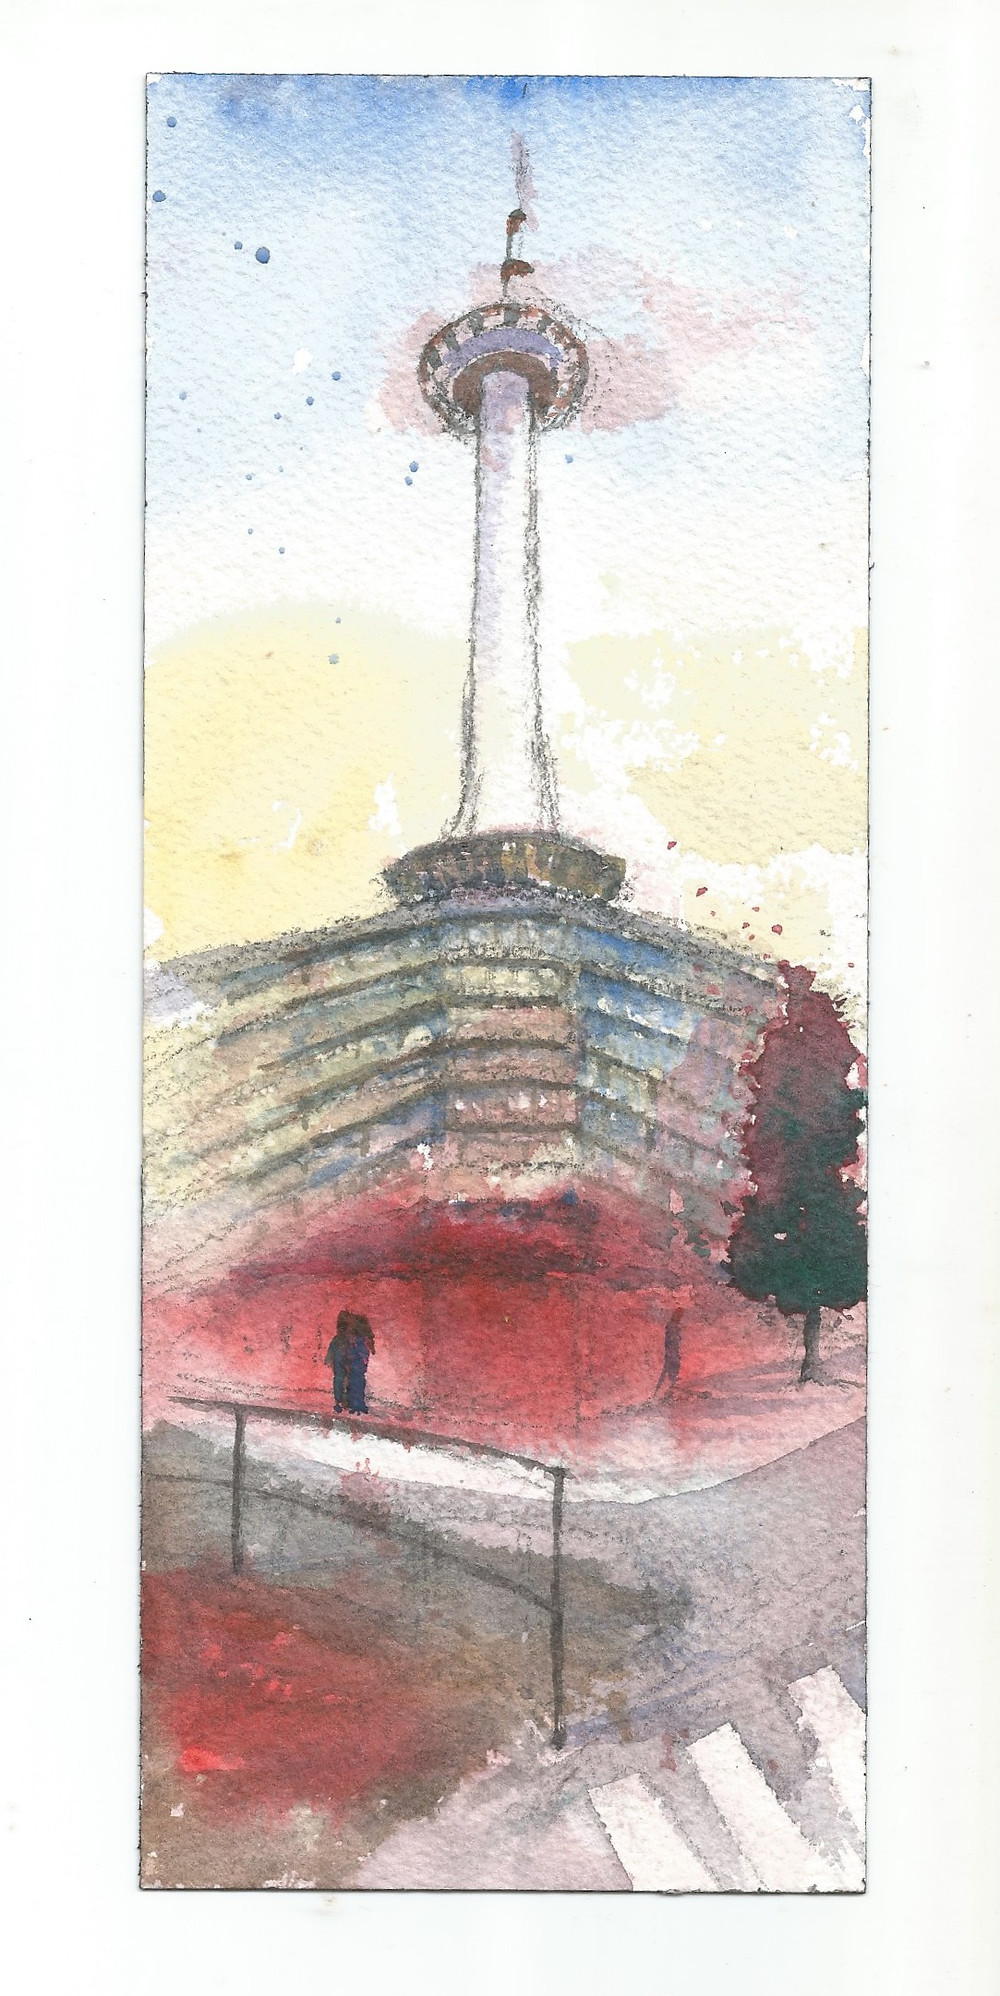 Kyoto Tower. Pencil and watercolor on paper.